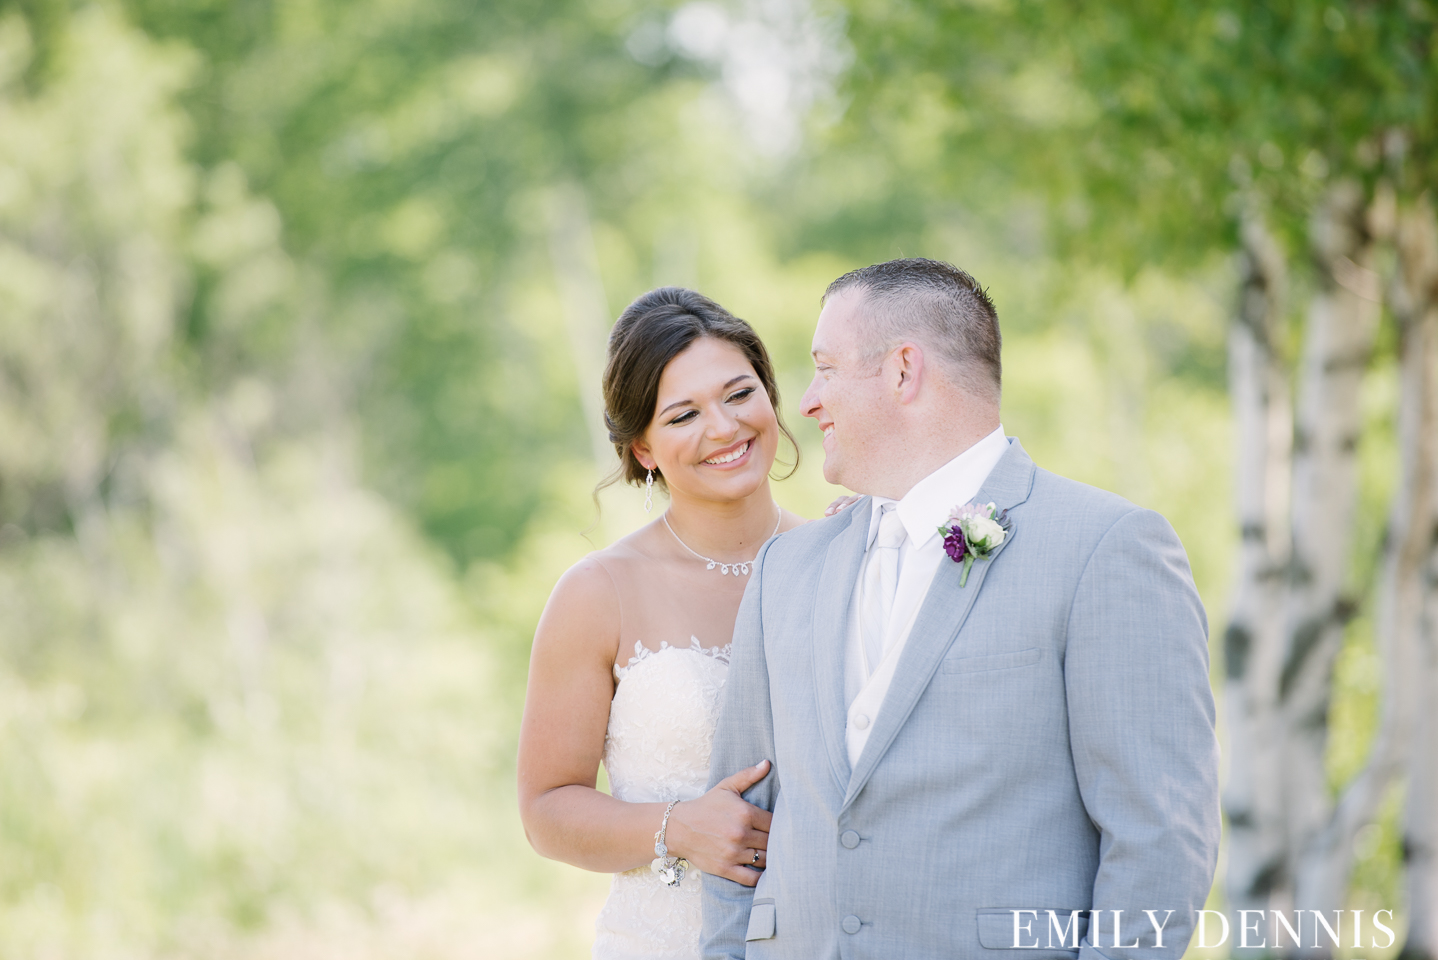 EMILY_DENNIS_PHOTOGRAPHY-47